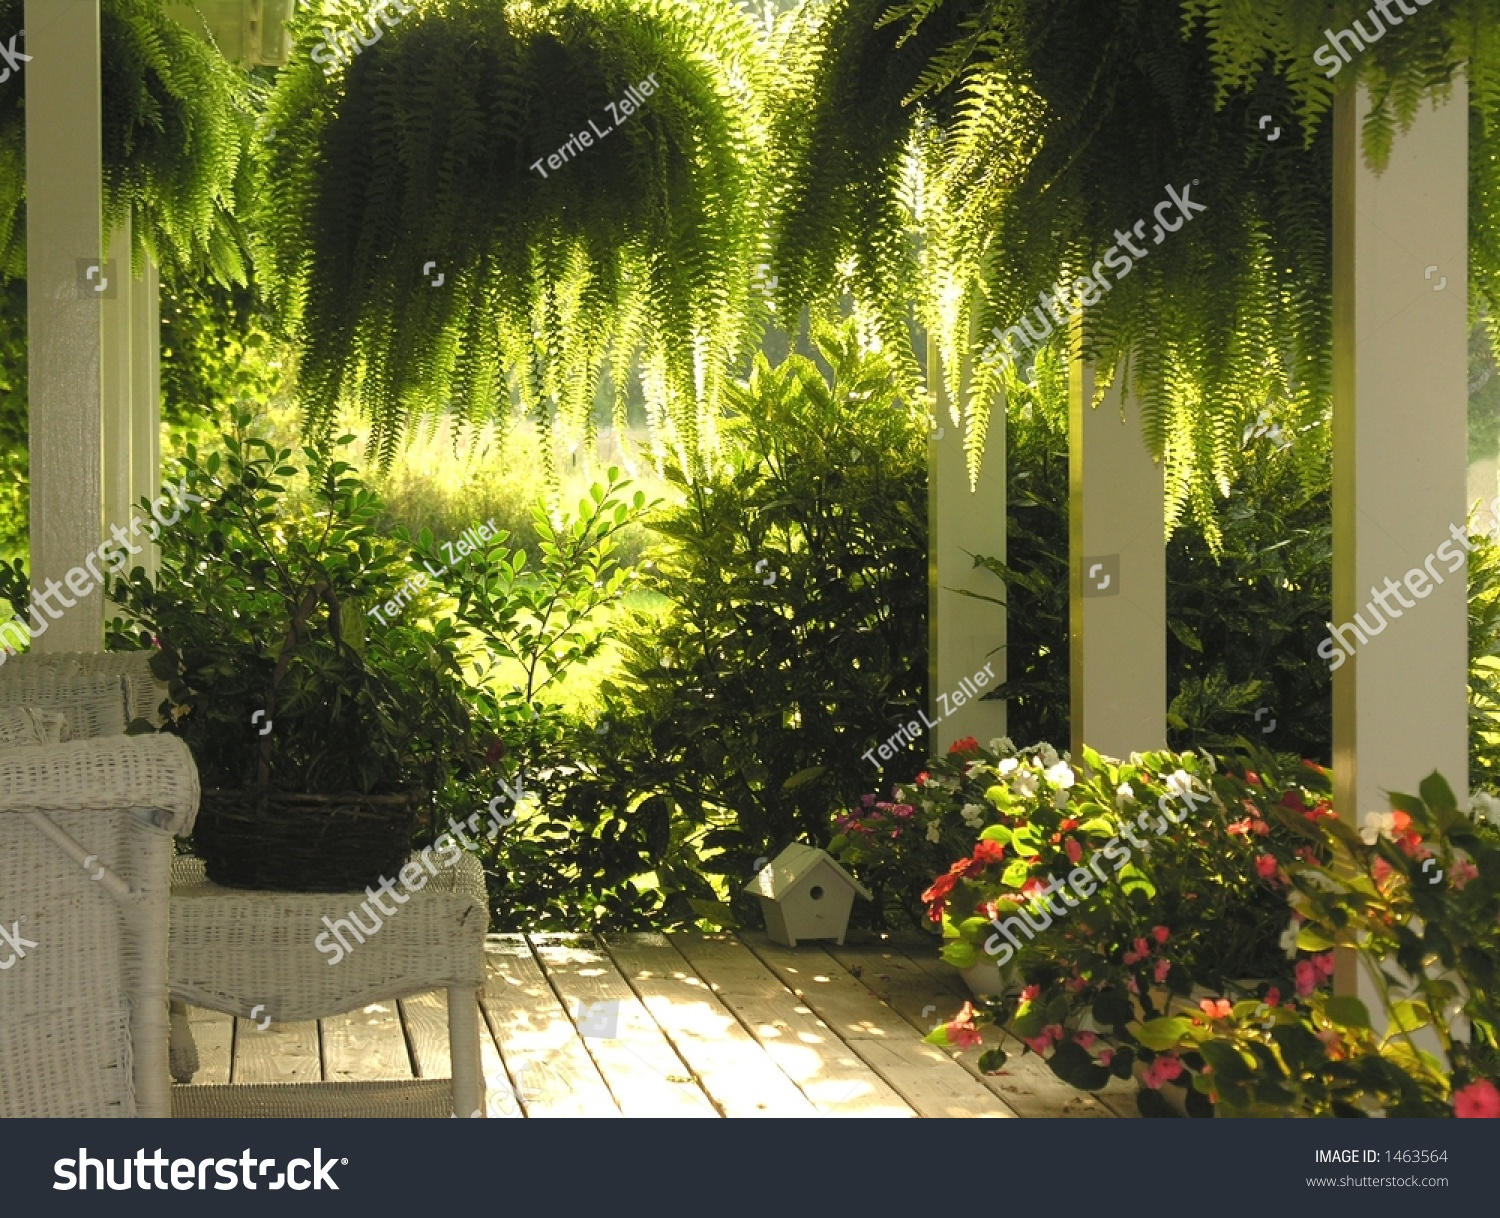 outdoor porch chairs black flat bungee office chair with arms front hanging ferns stock photo 1463564 - shutterstock